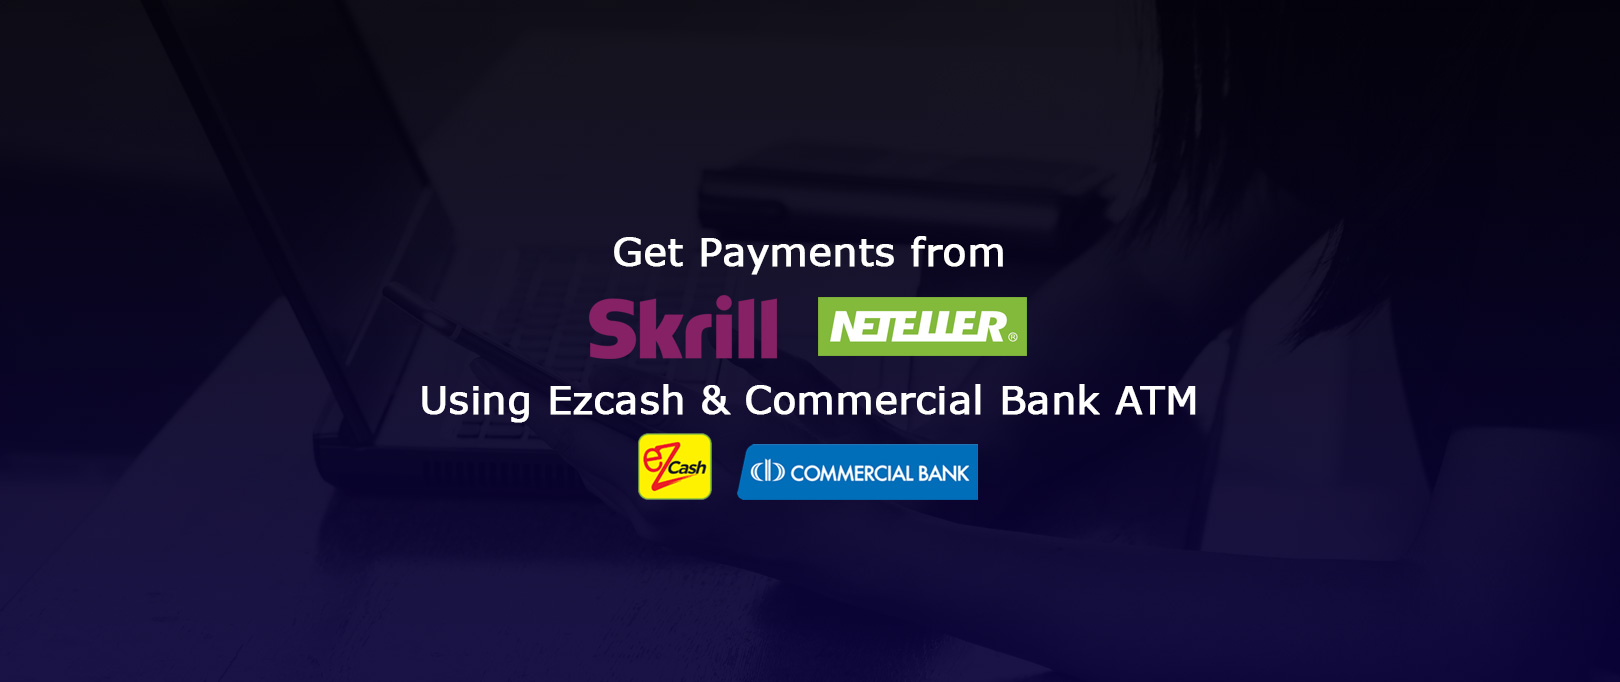 skrill-and-neteller-ezcash-to-commercial-bank-atm-withdrawal-in-english